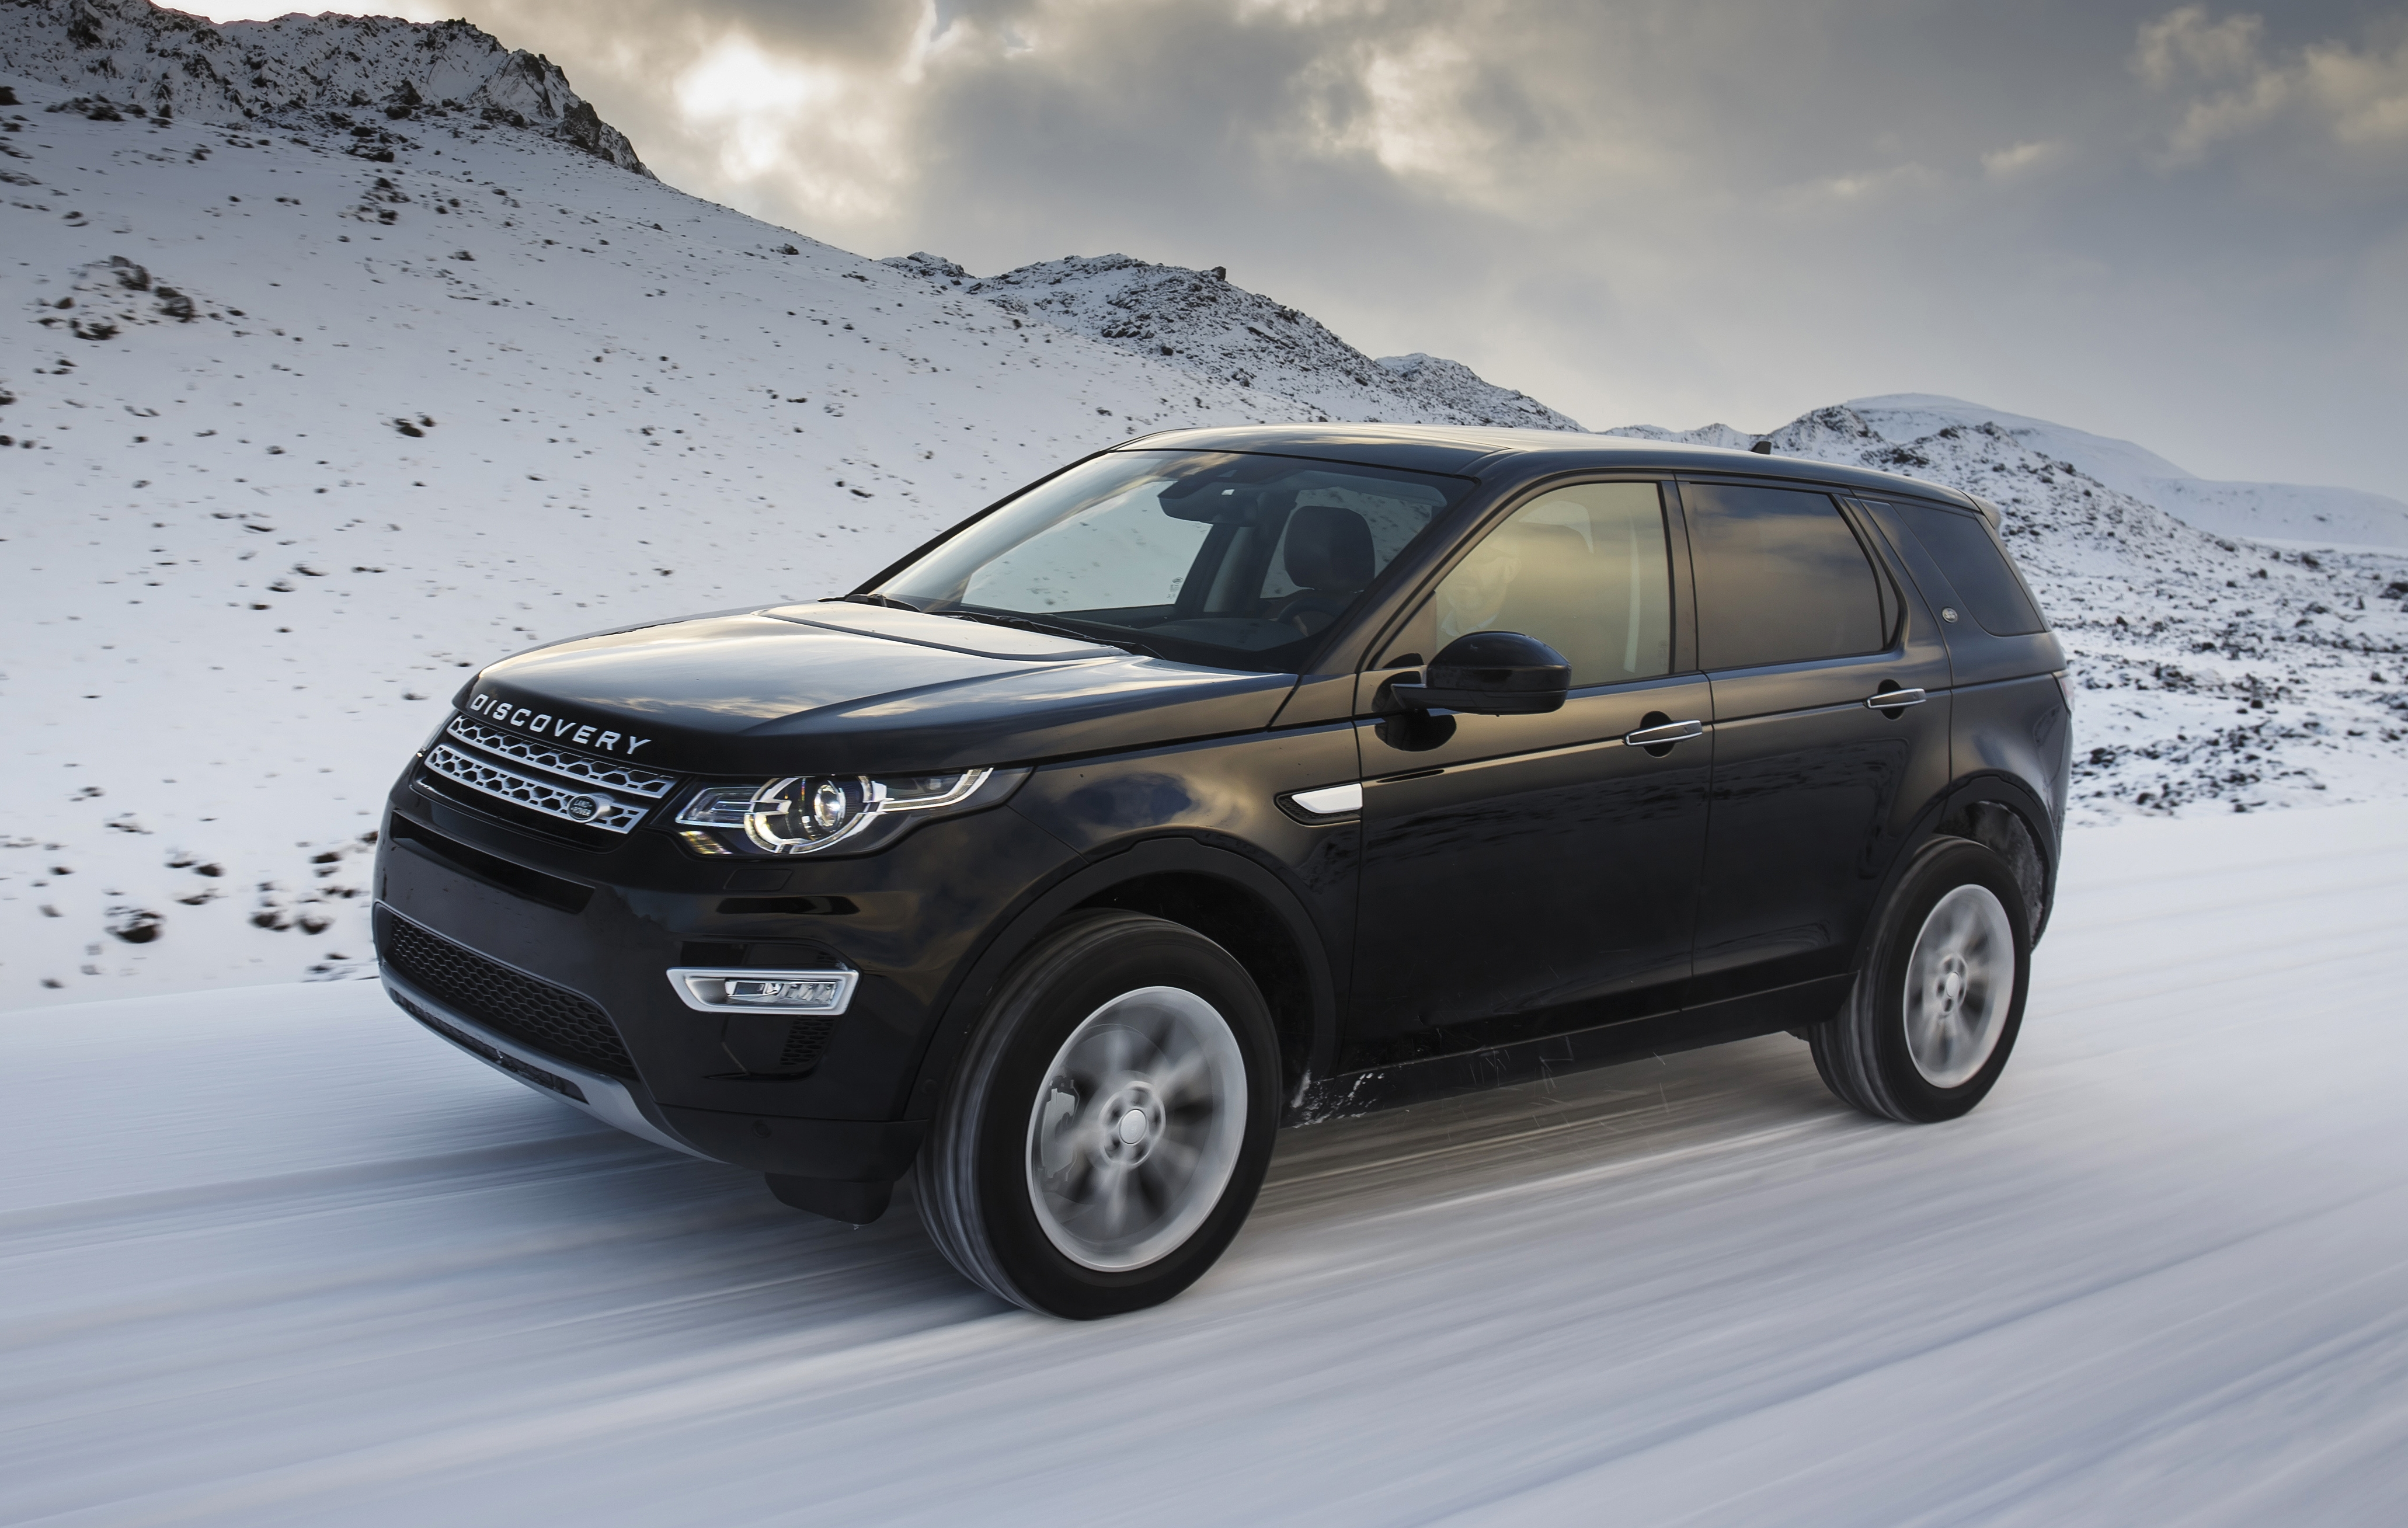 Range Rover Discovery Sport >> DRIVEN: L550 Land Rover Discovery Sport in Iceland Image 344803